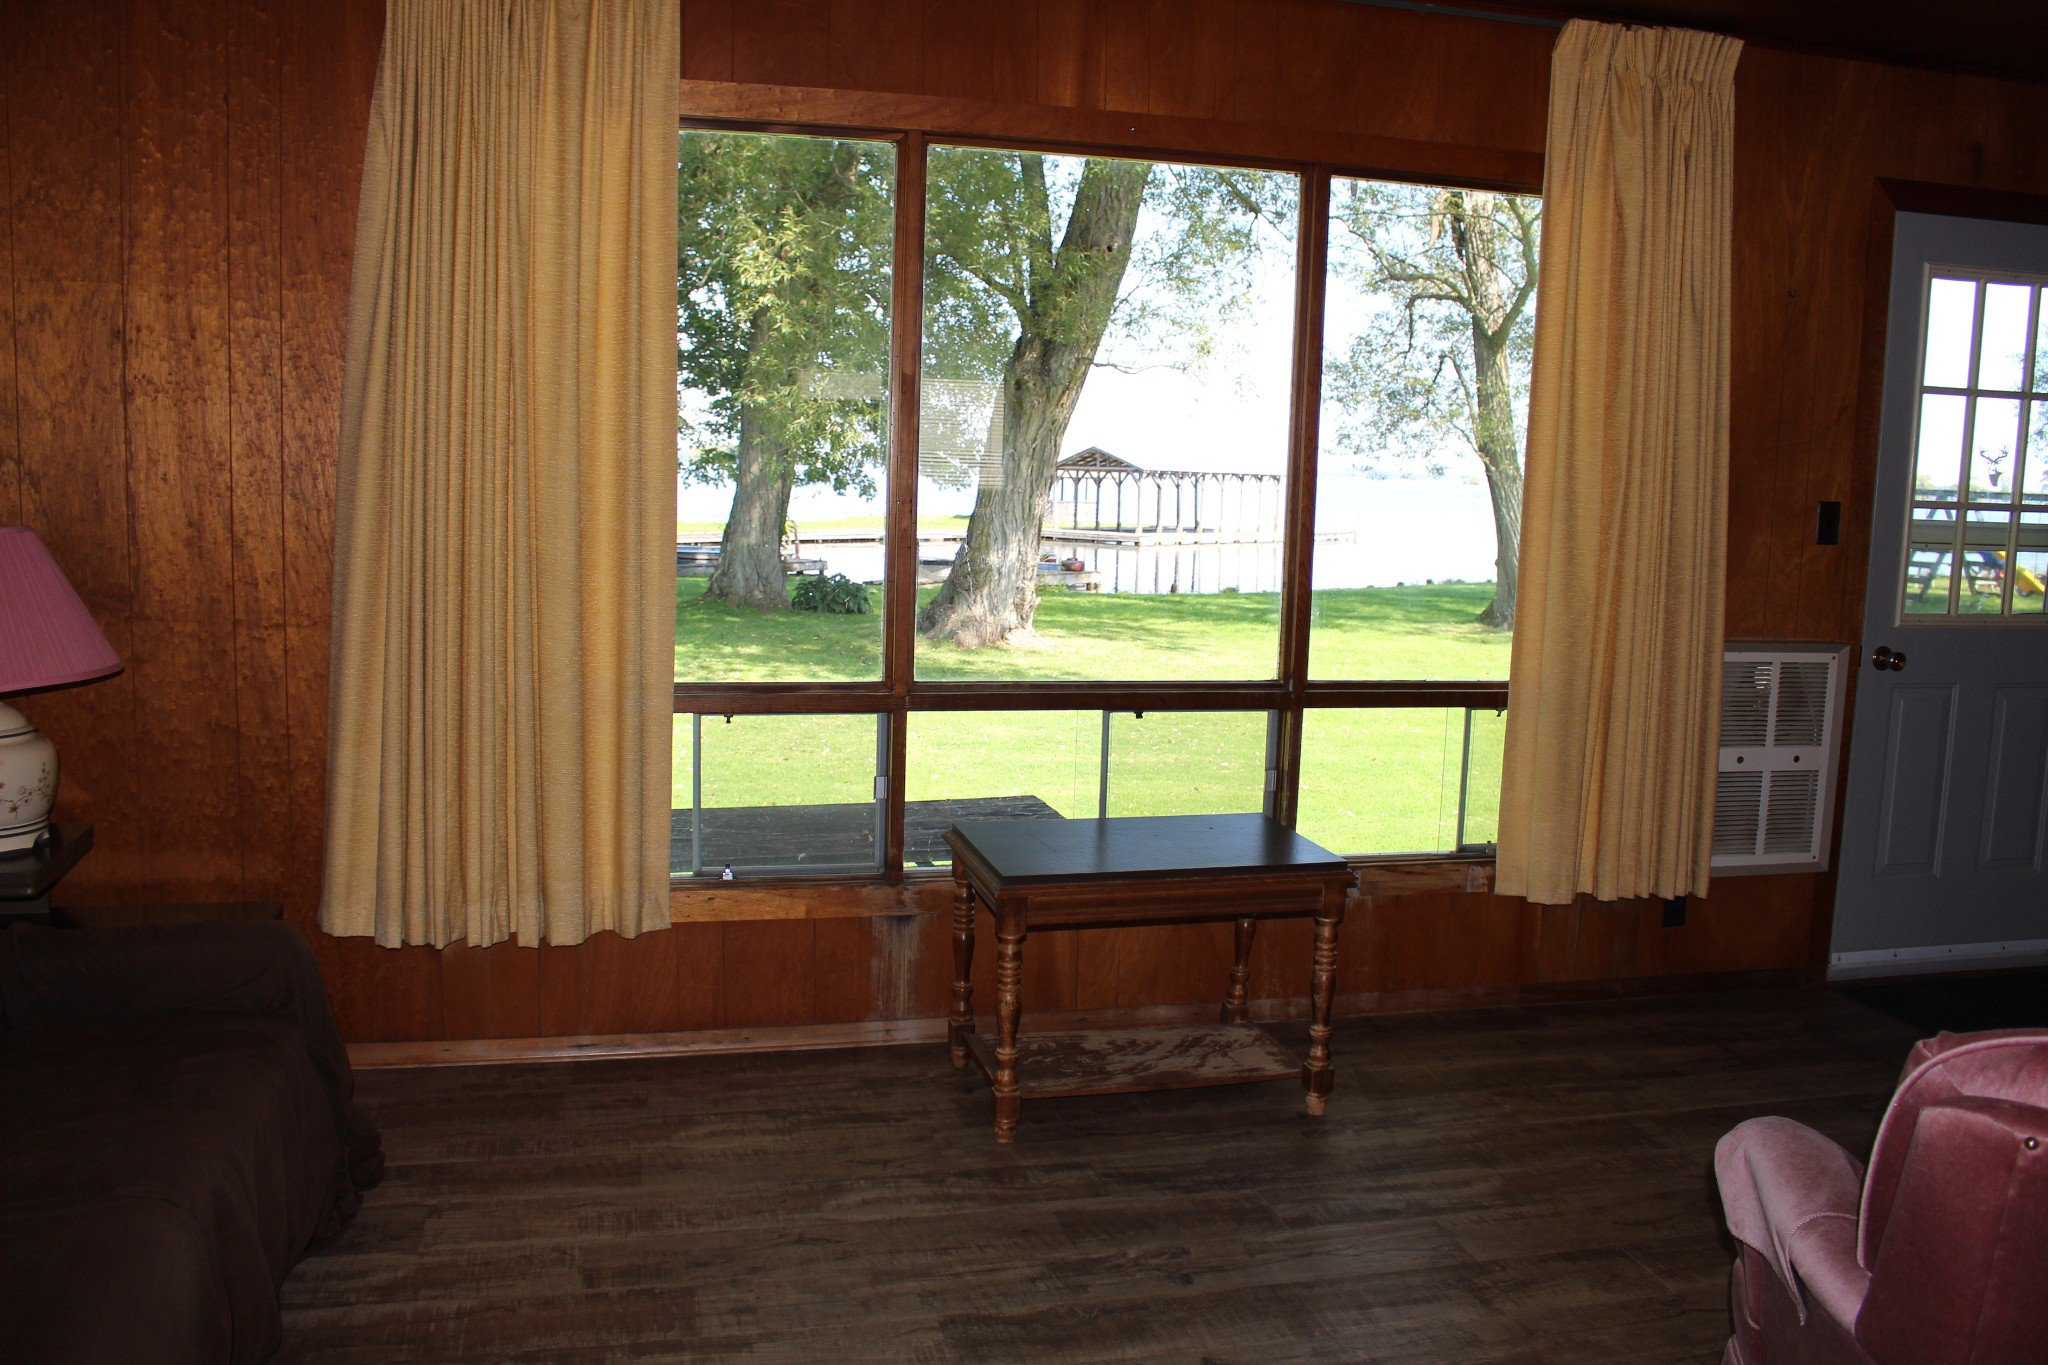 Photo 32: Photos: 6010 Rice Lake Scenic Drive in Harwood: Other for sale : MLS®# 223405